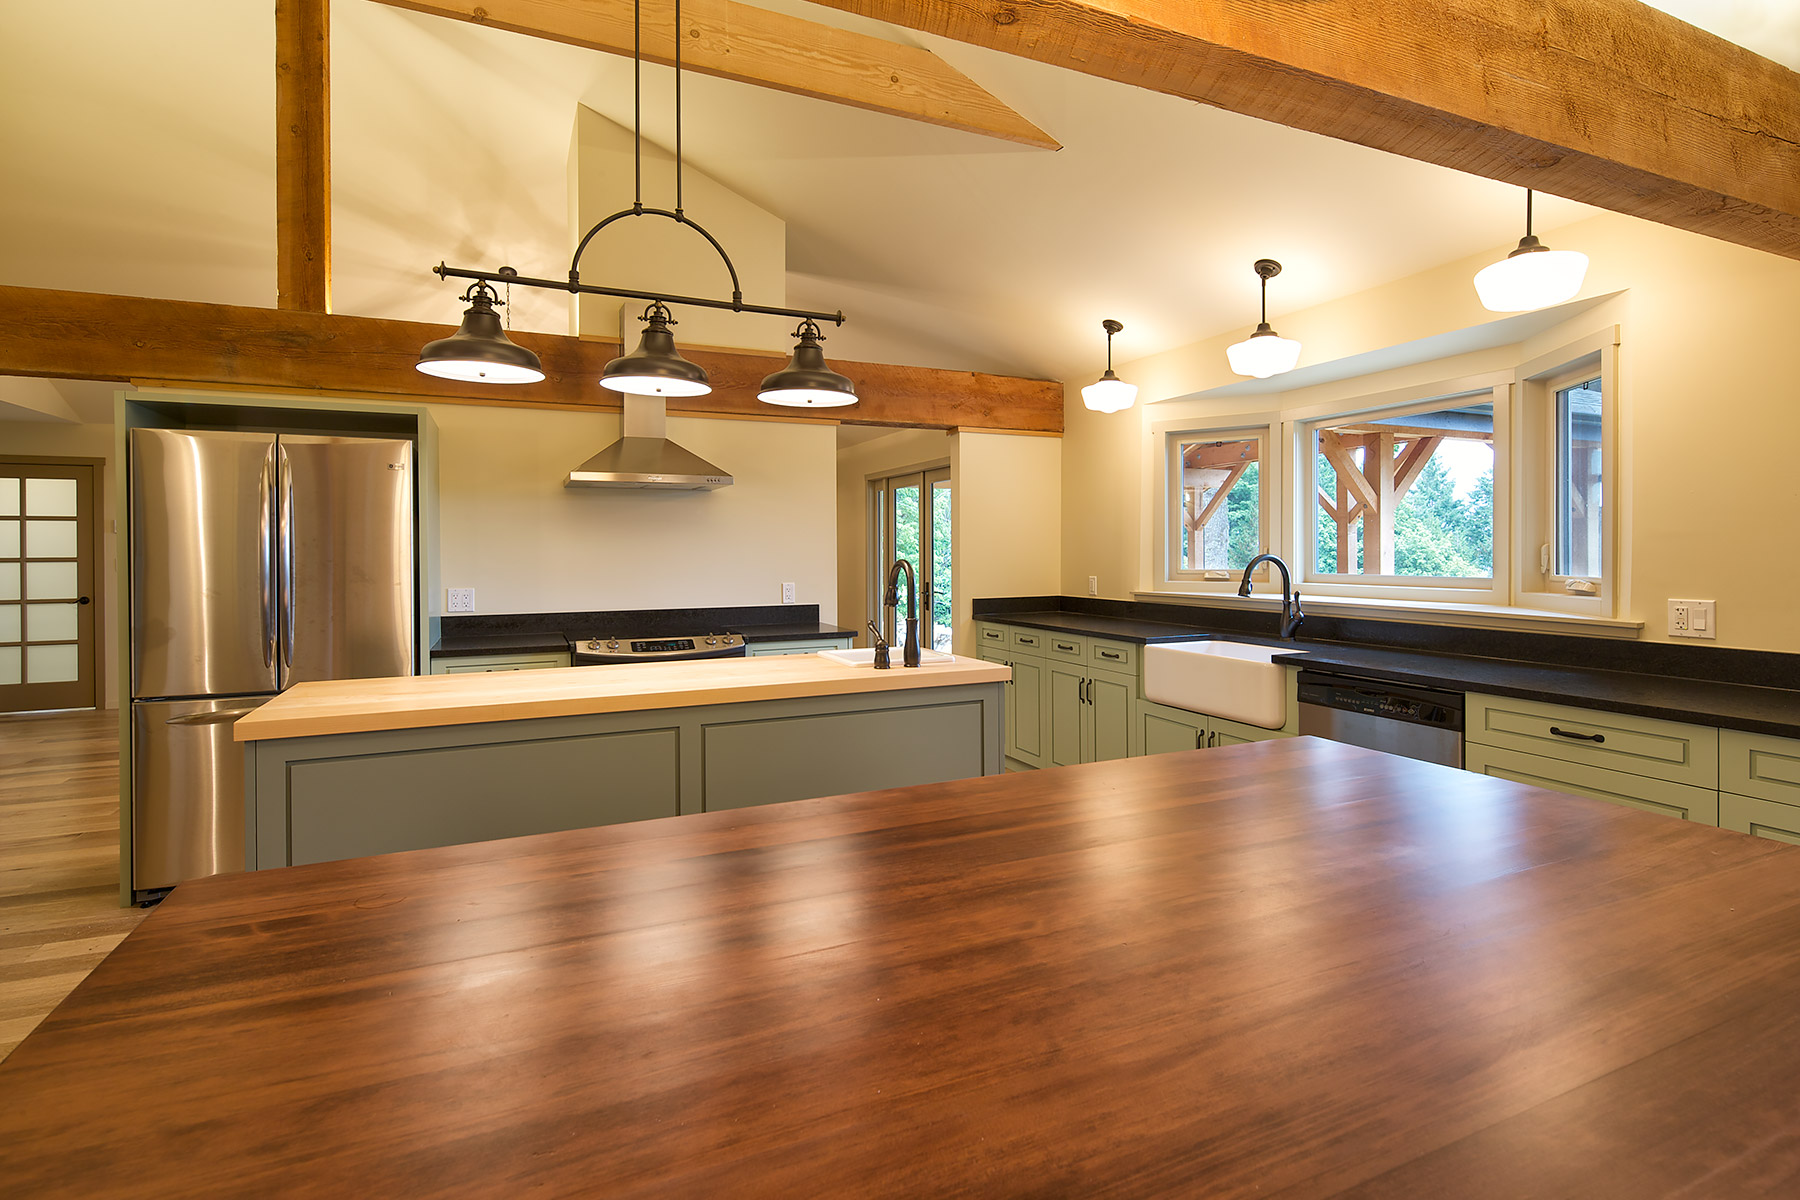 Salt Spring Island Farm Kitchen Renovation ©johncameron.ca